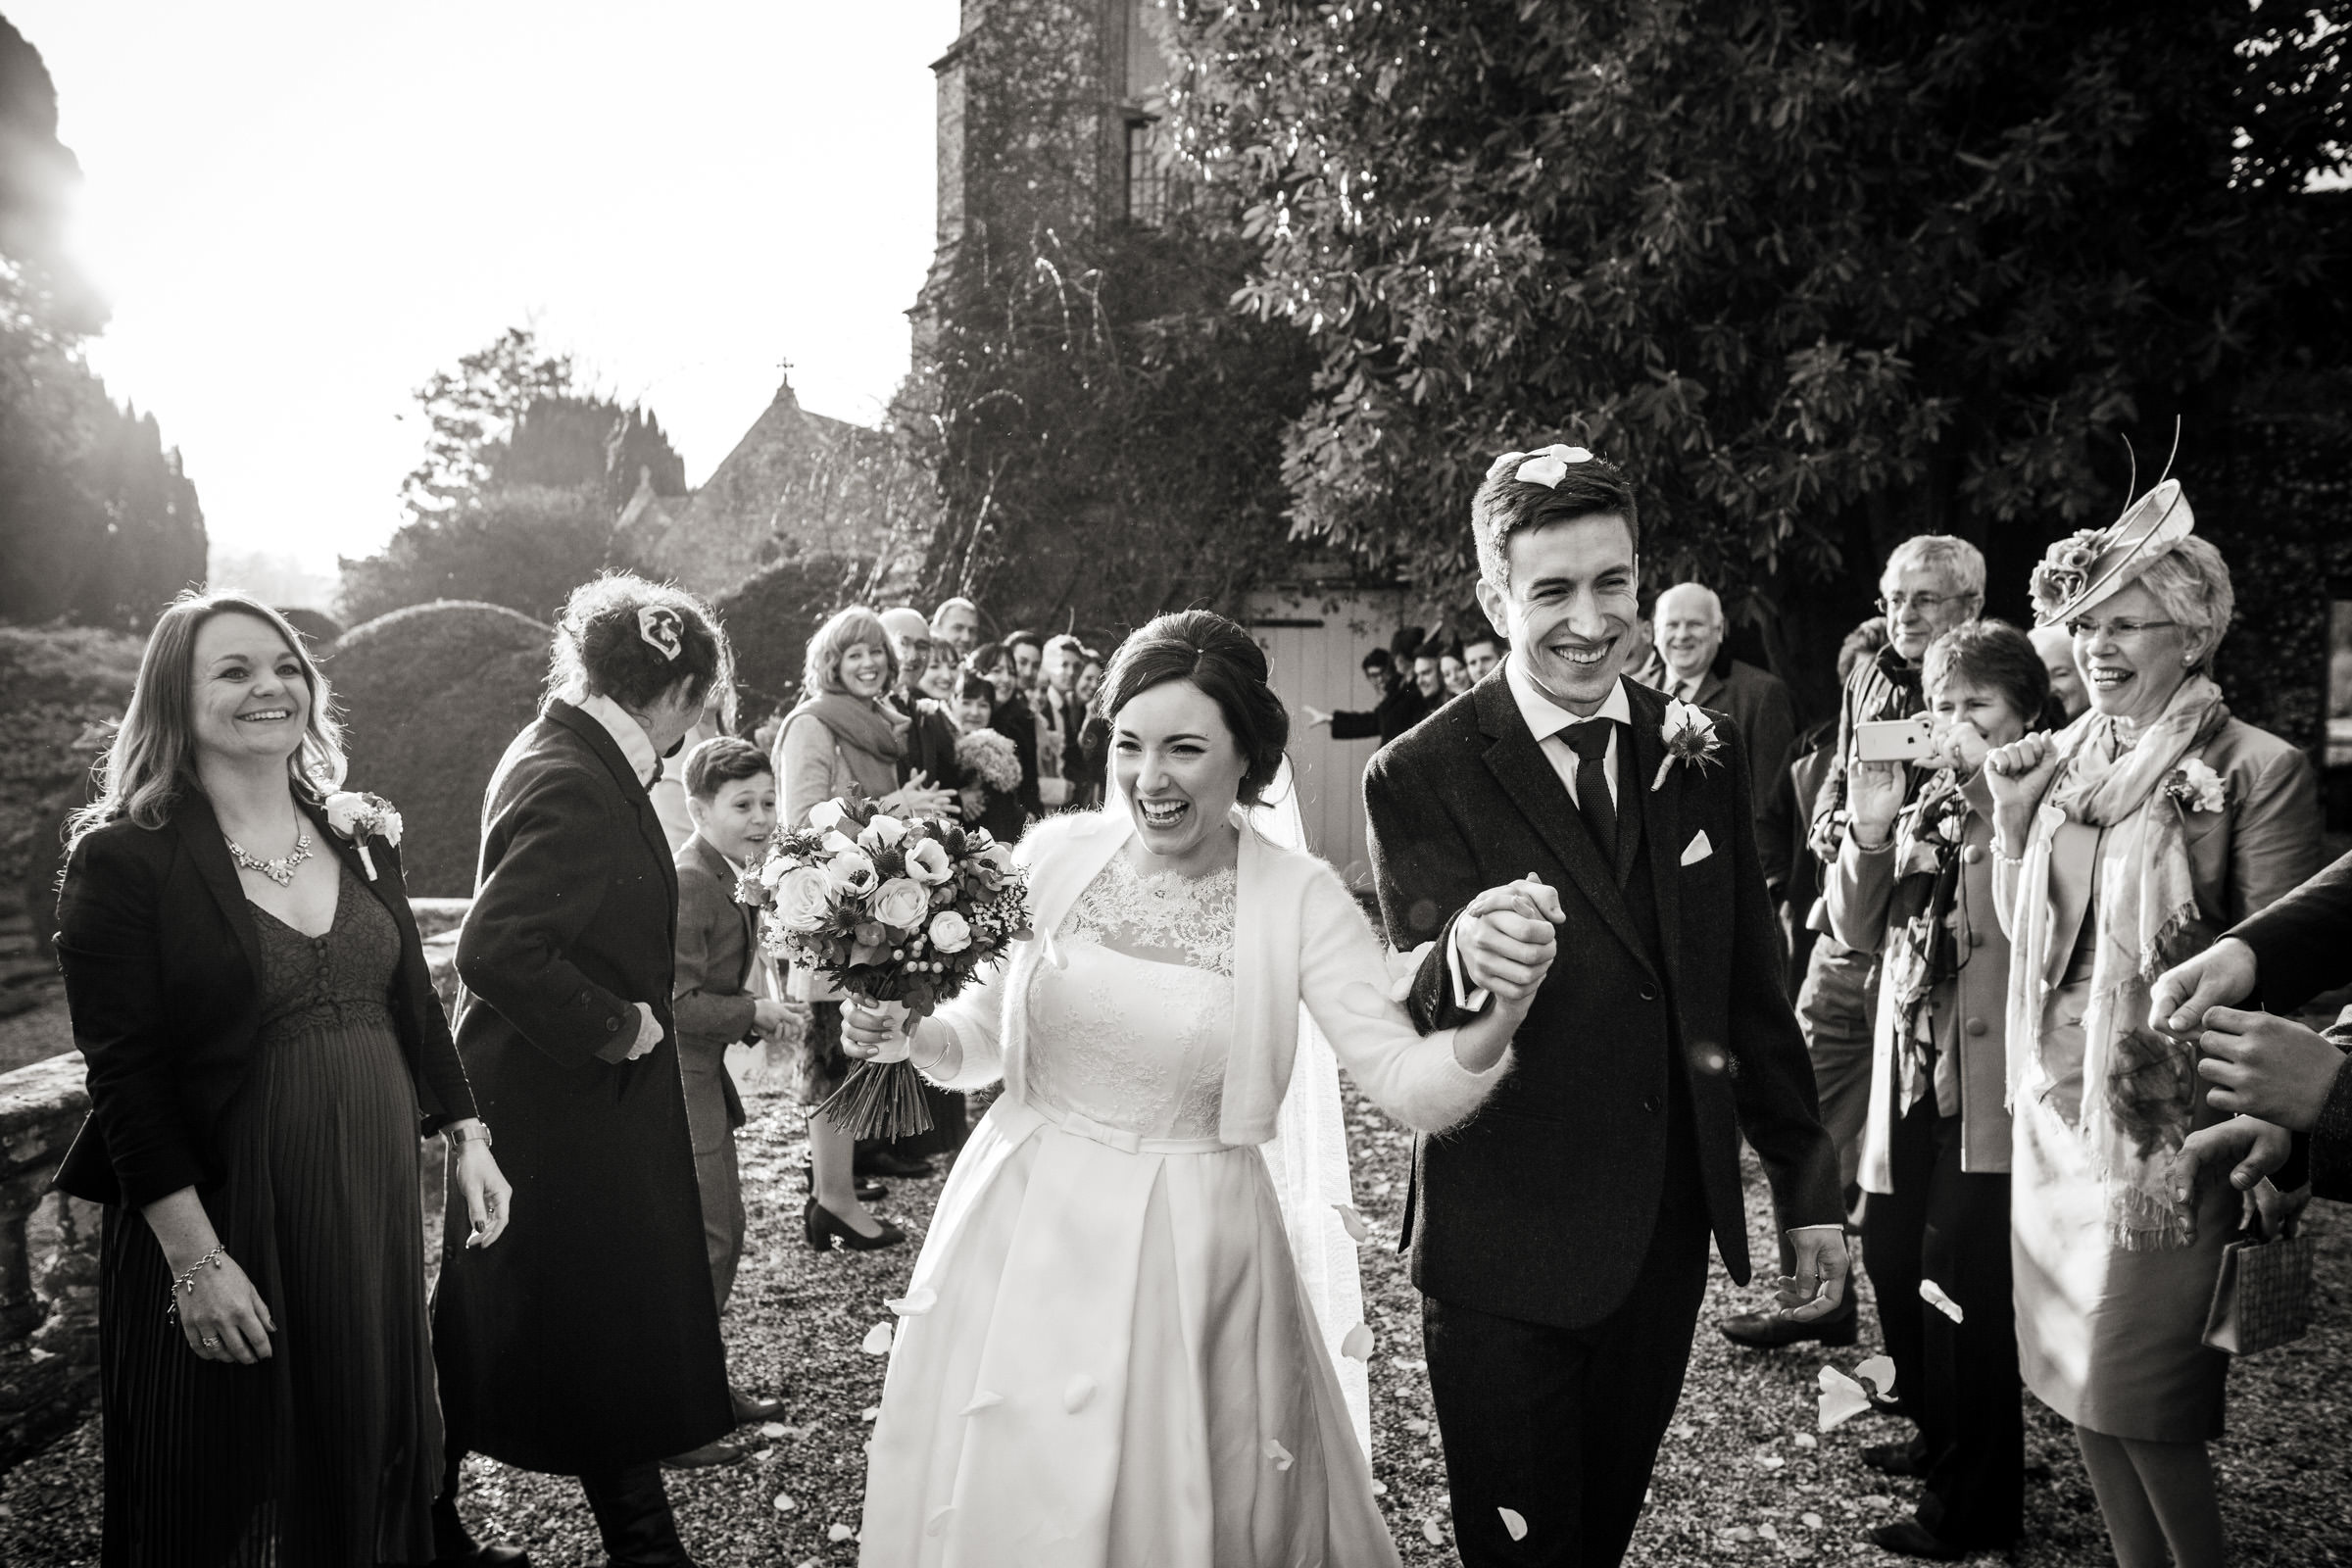 relaxed wedding photography at in somerset 014.jpg